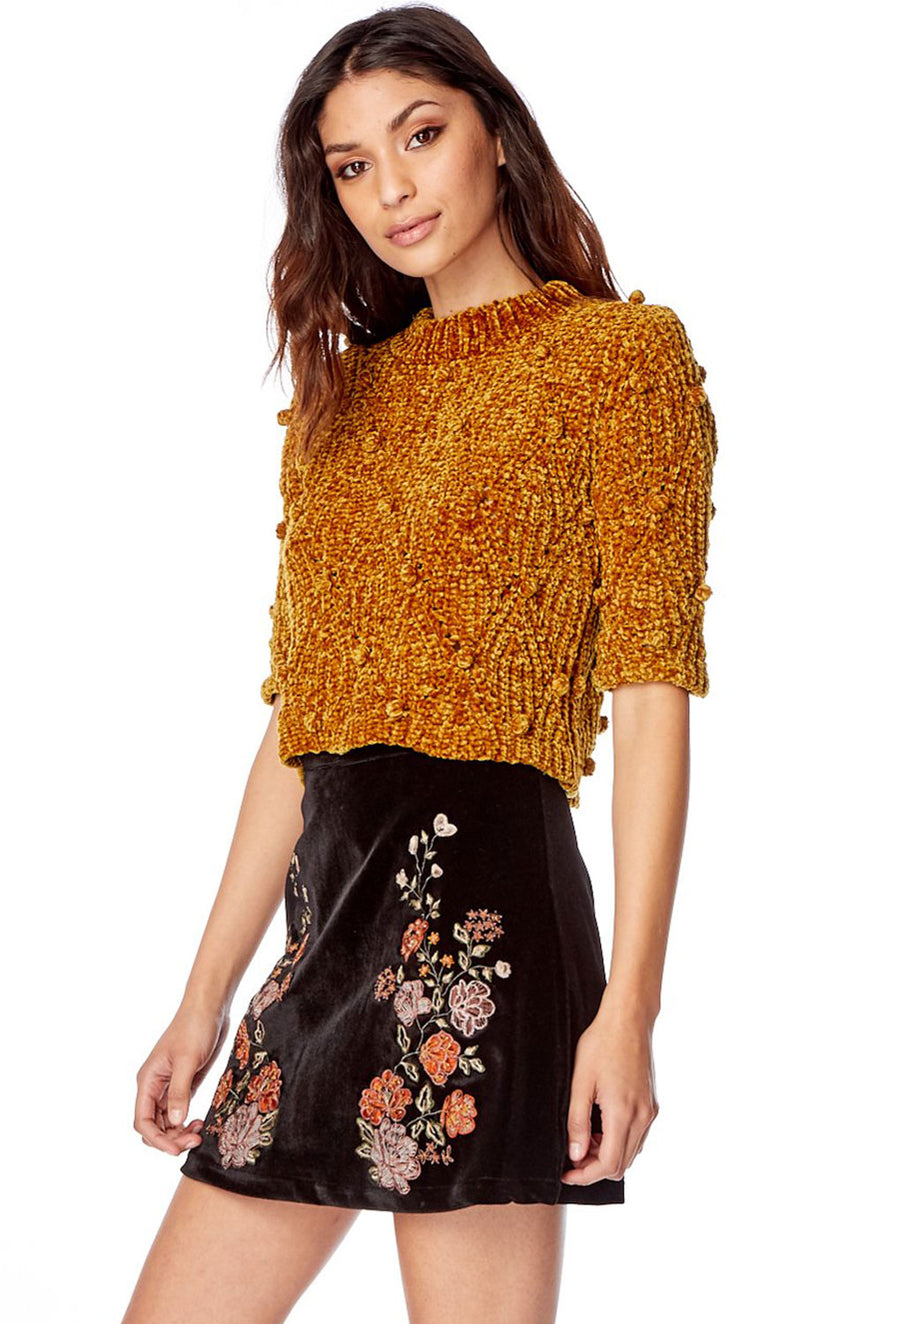 Golden Child Sweater Crop Top